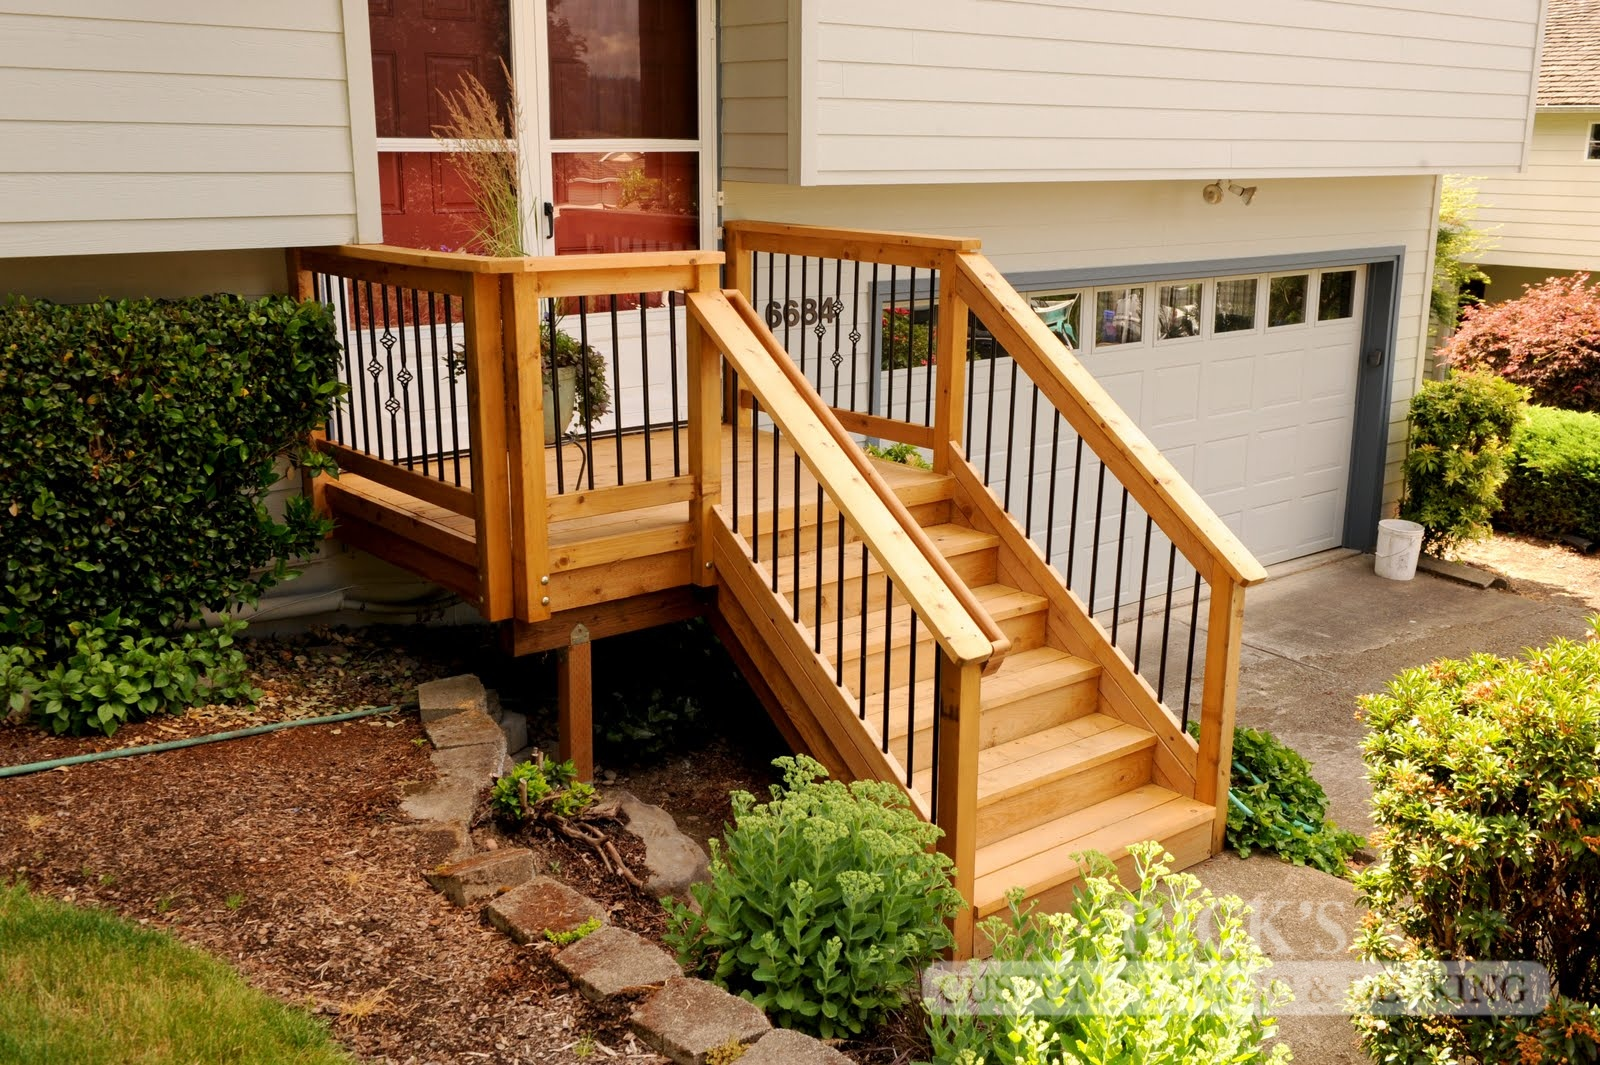 1036 - Port Orford Cedar Decking with Handrail